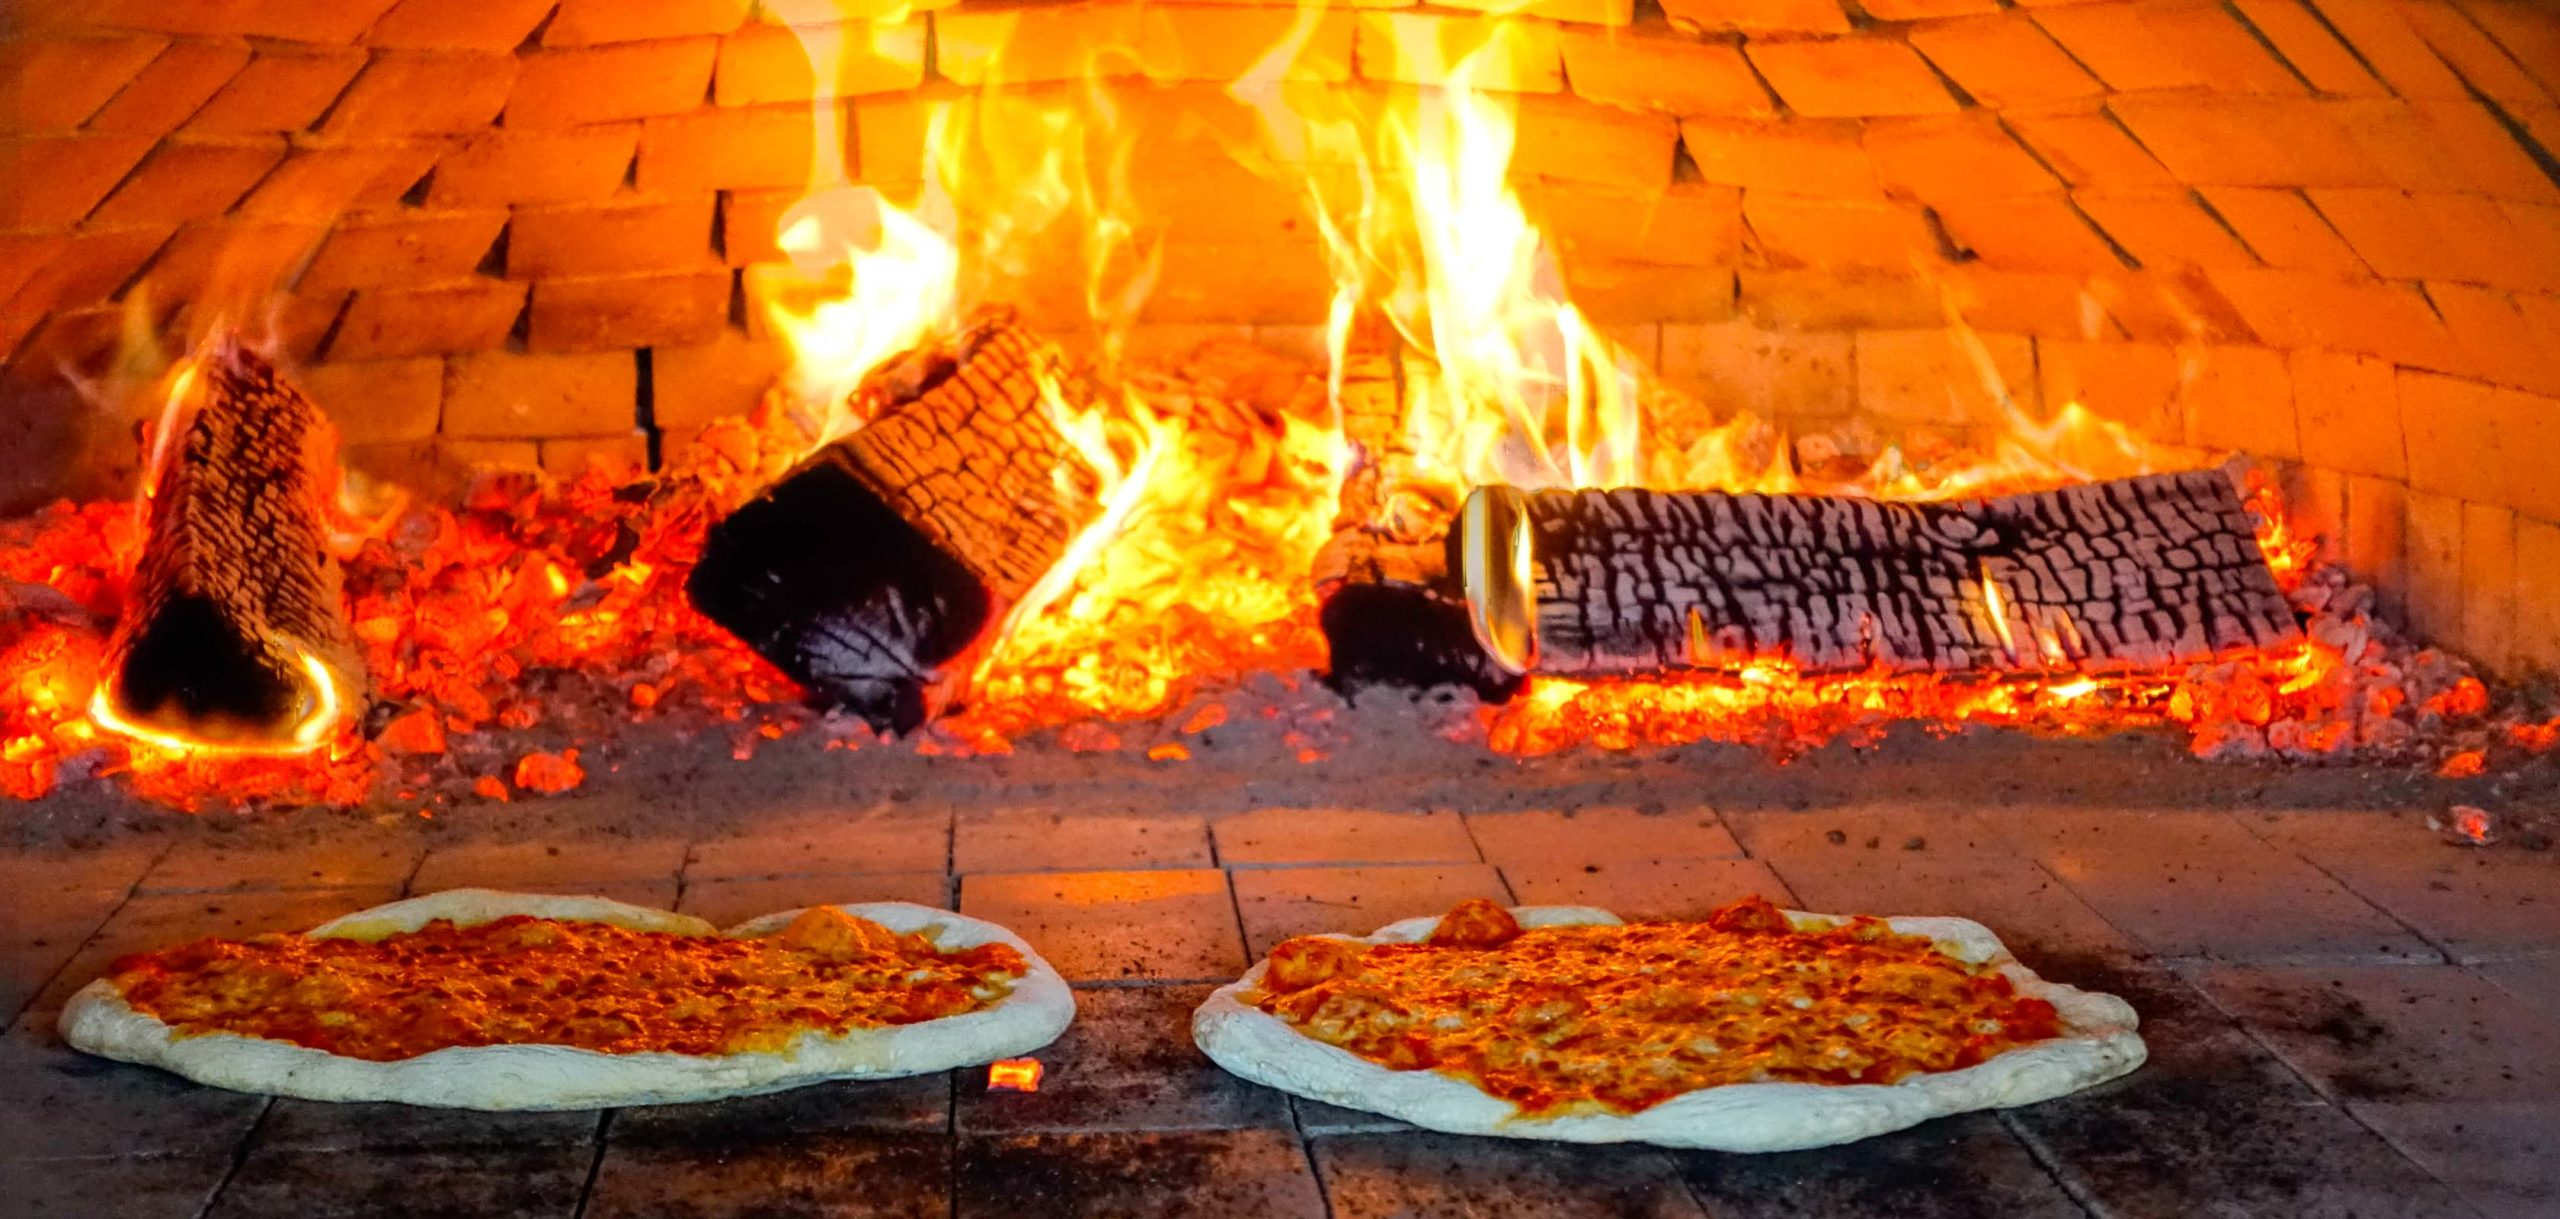 Pizzas being fired in a wood burning stove.